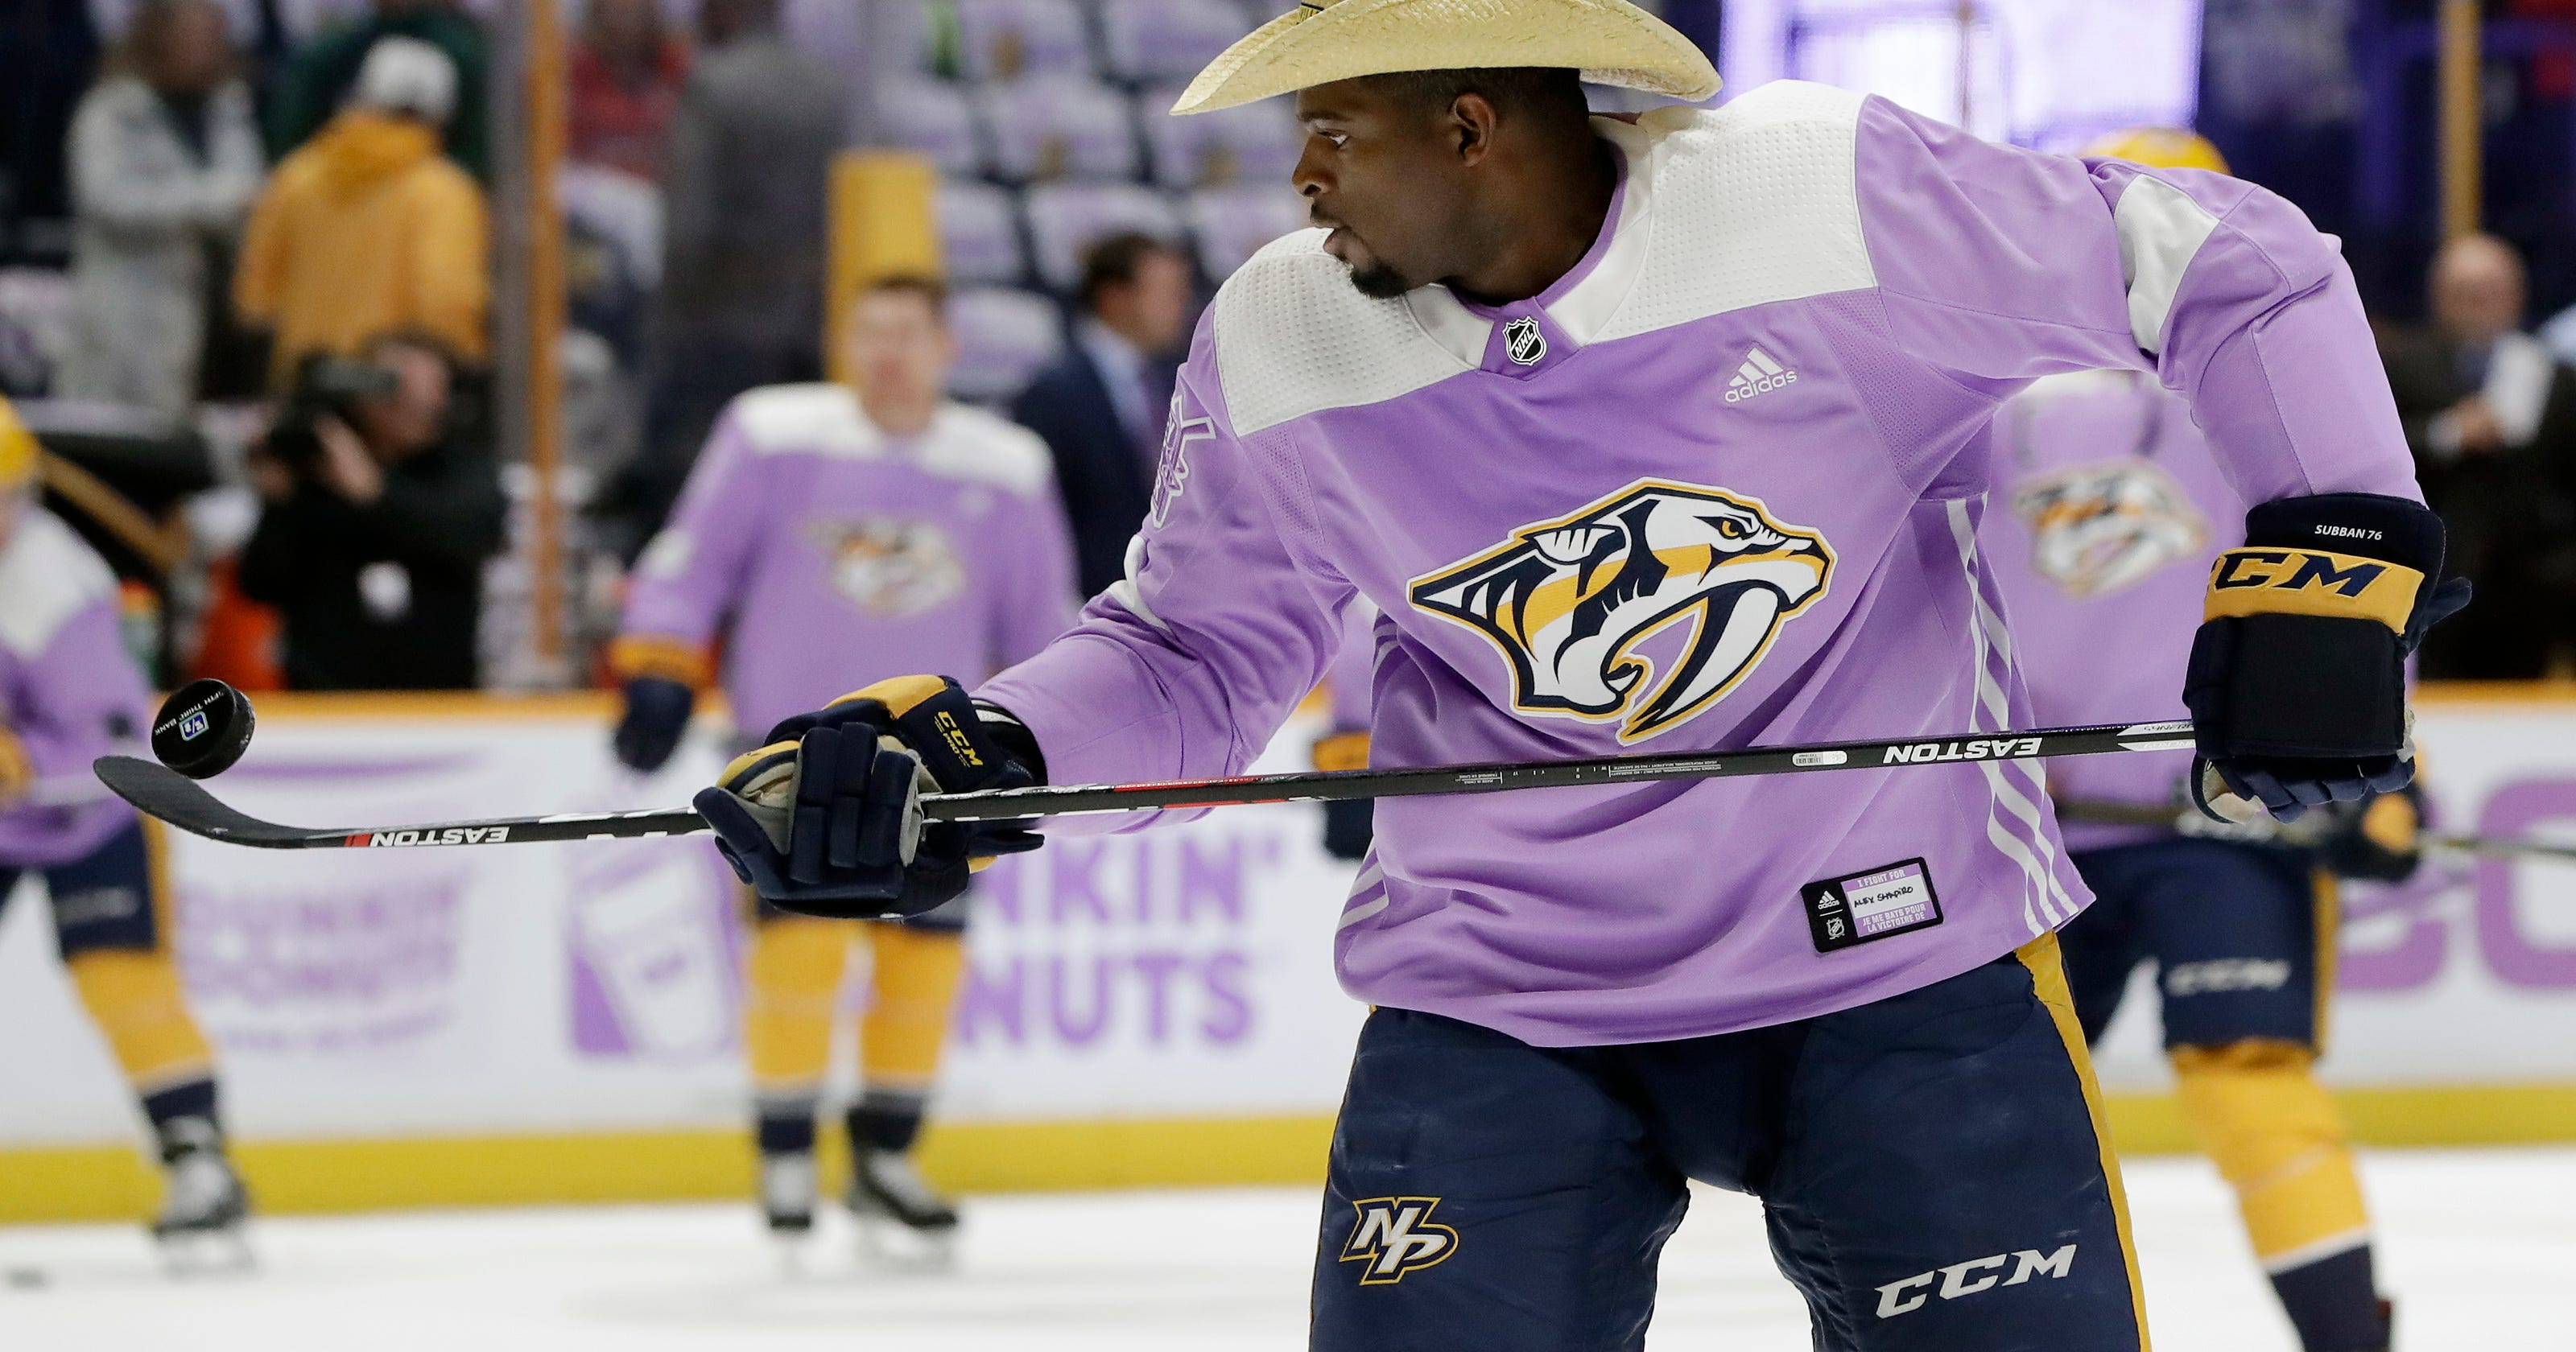 P.K. Subban s warmup routine is show before the show at Predators games 442e6ffcd